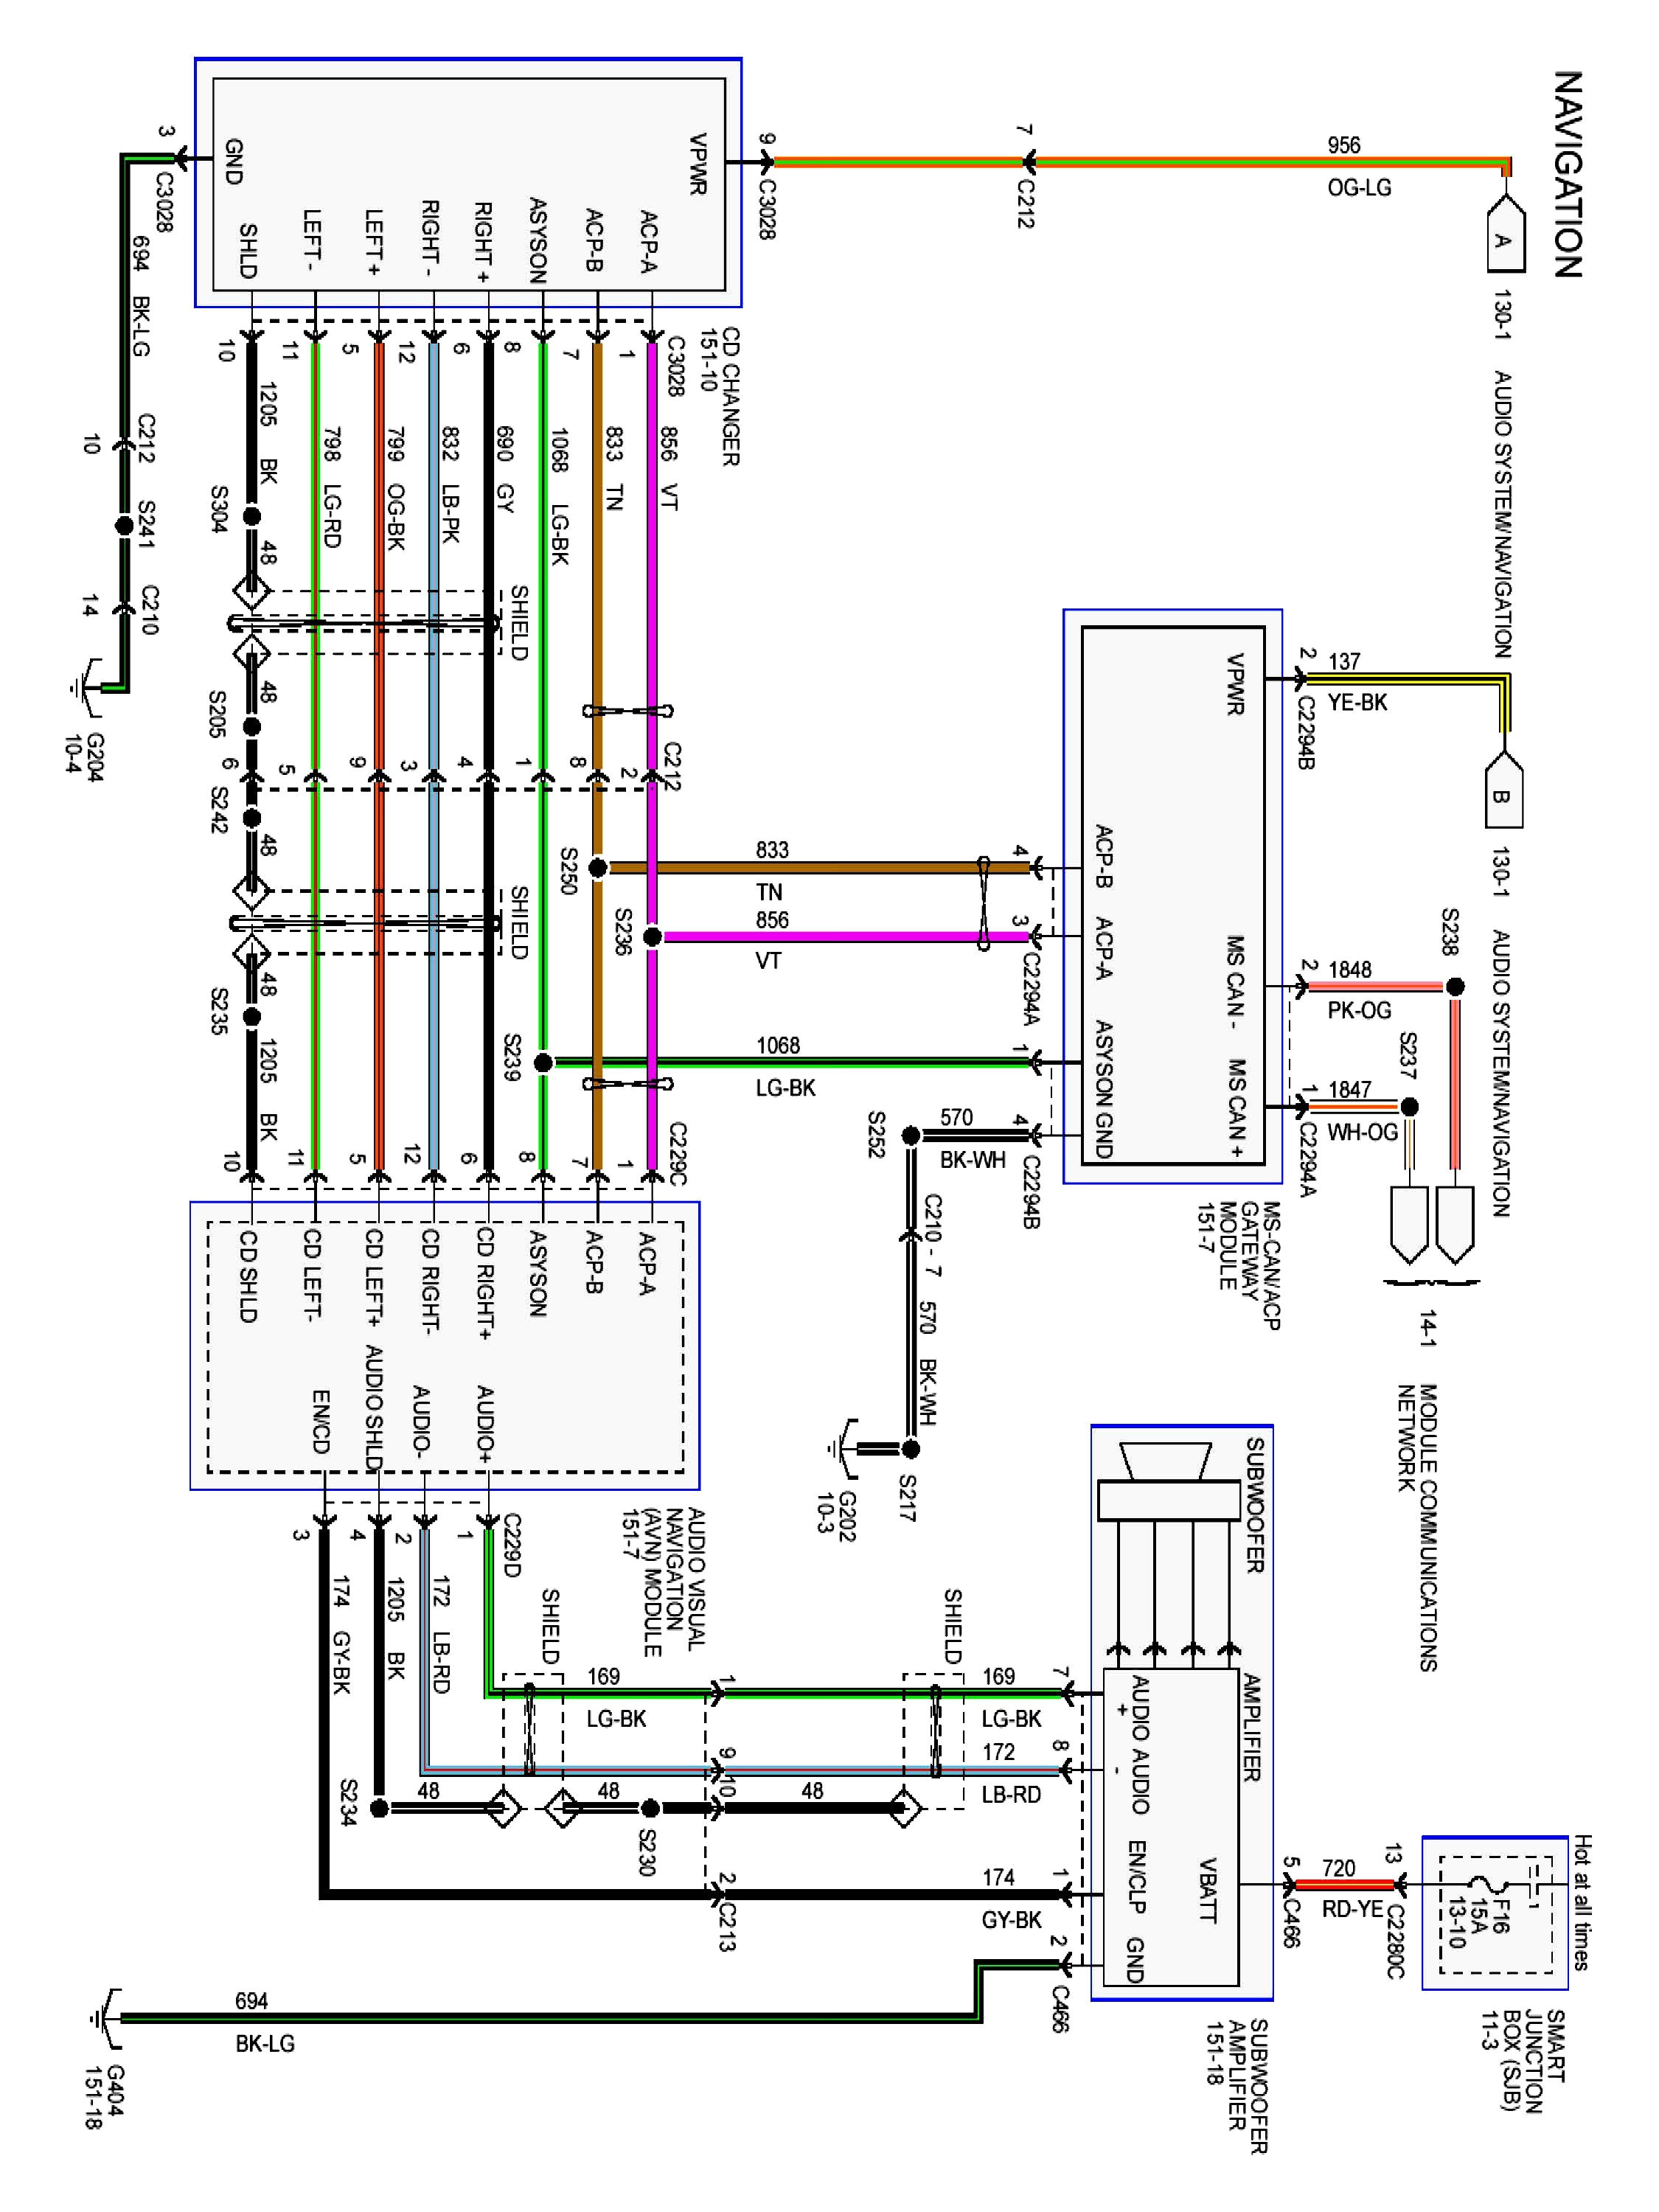 07 f550 wiring diagram for trailer schematics wiring diagrams u2022 rh marapolsa co